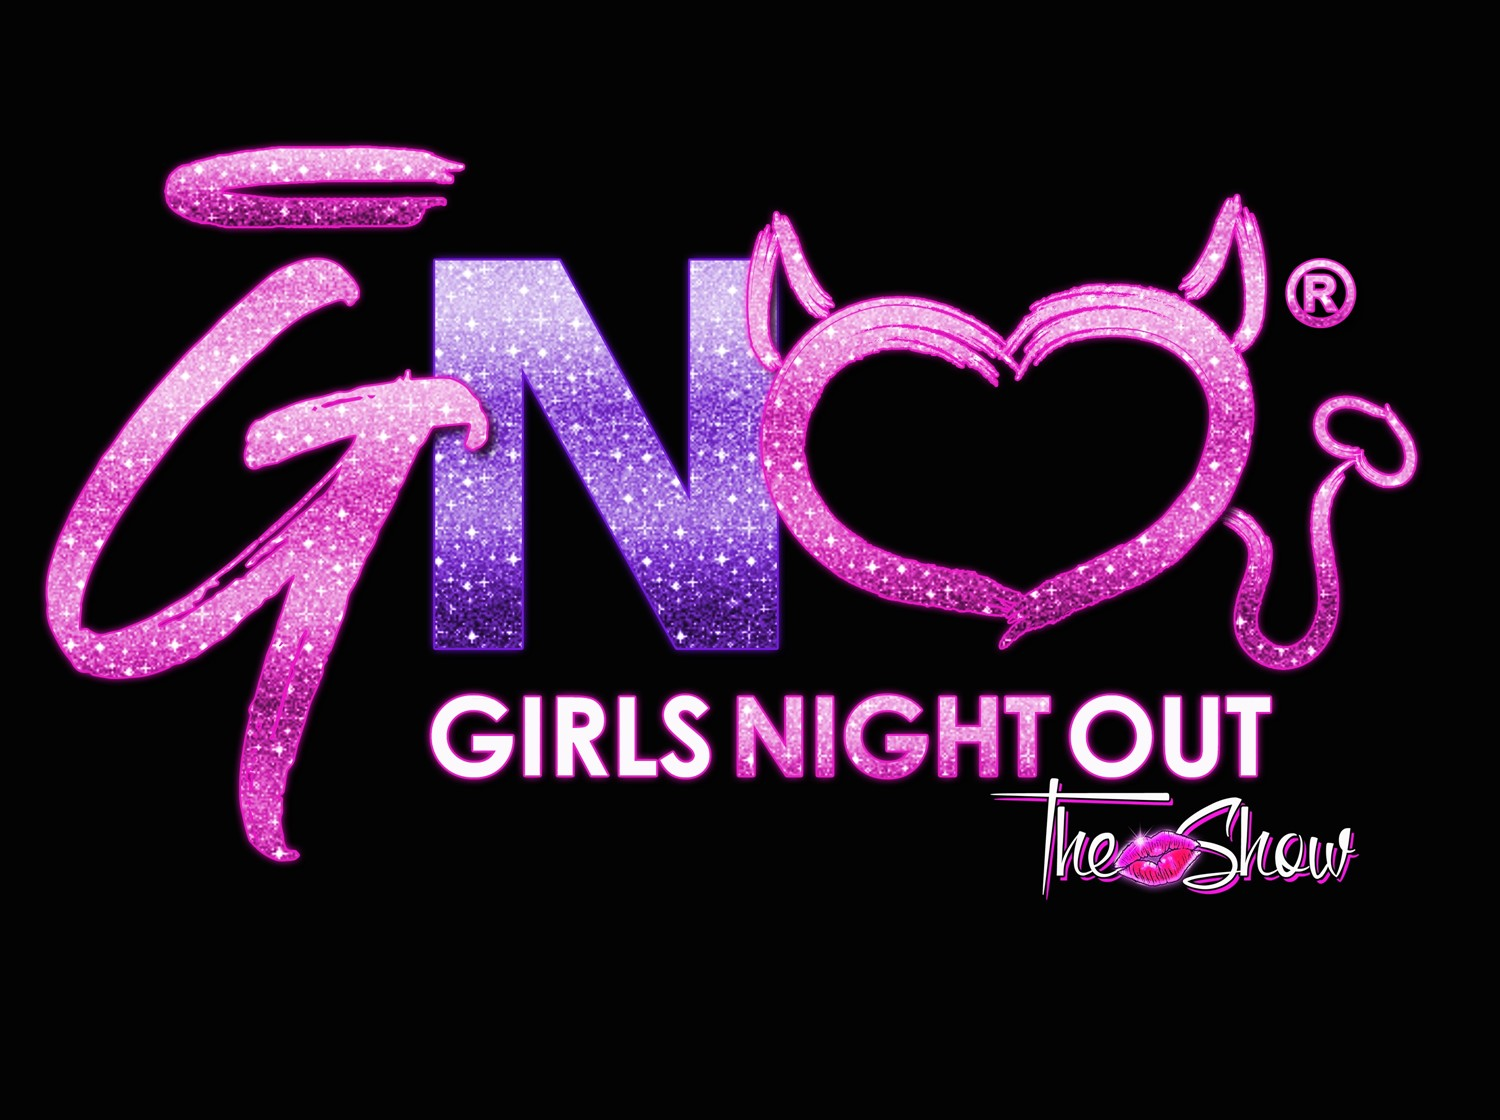 Tomo Hibachi & Sushi (21+) Cleveland, OH on May 19, 20:00@Tomo Hibachi & Sushi - Buy tickets and Get information on Girls Night Out the Show tickets.girlsnightouttheshow.com